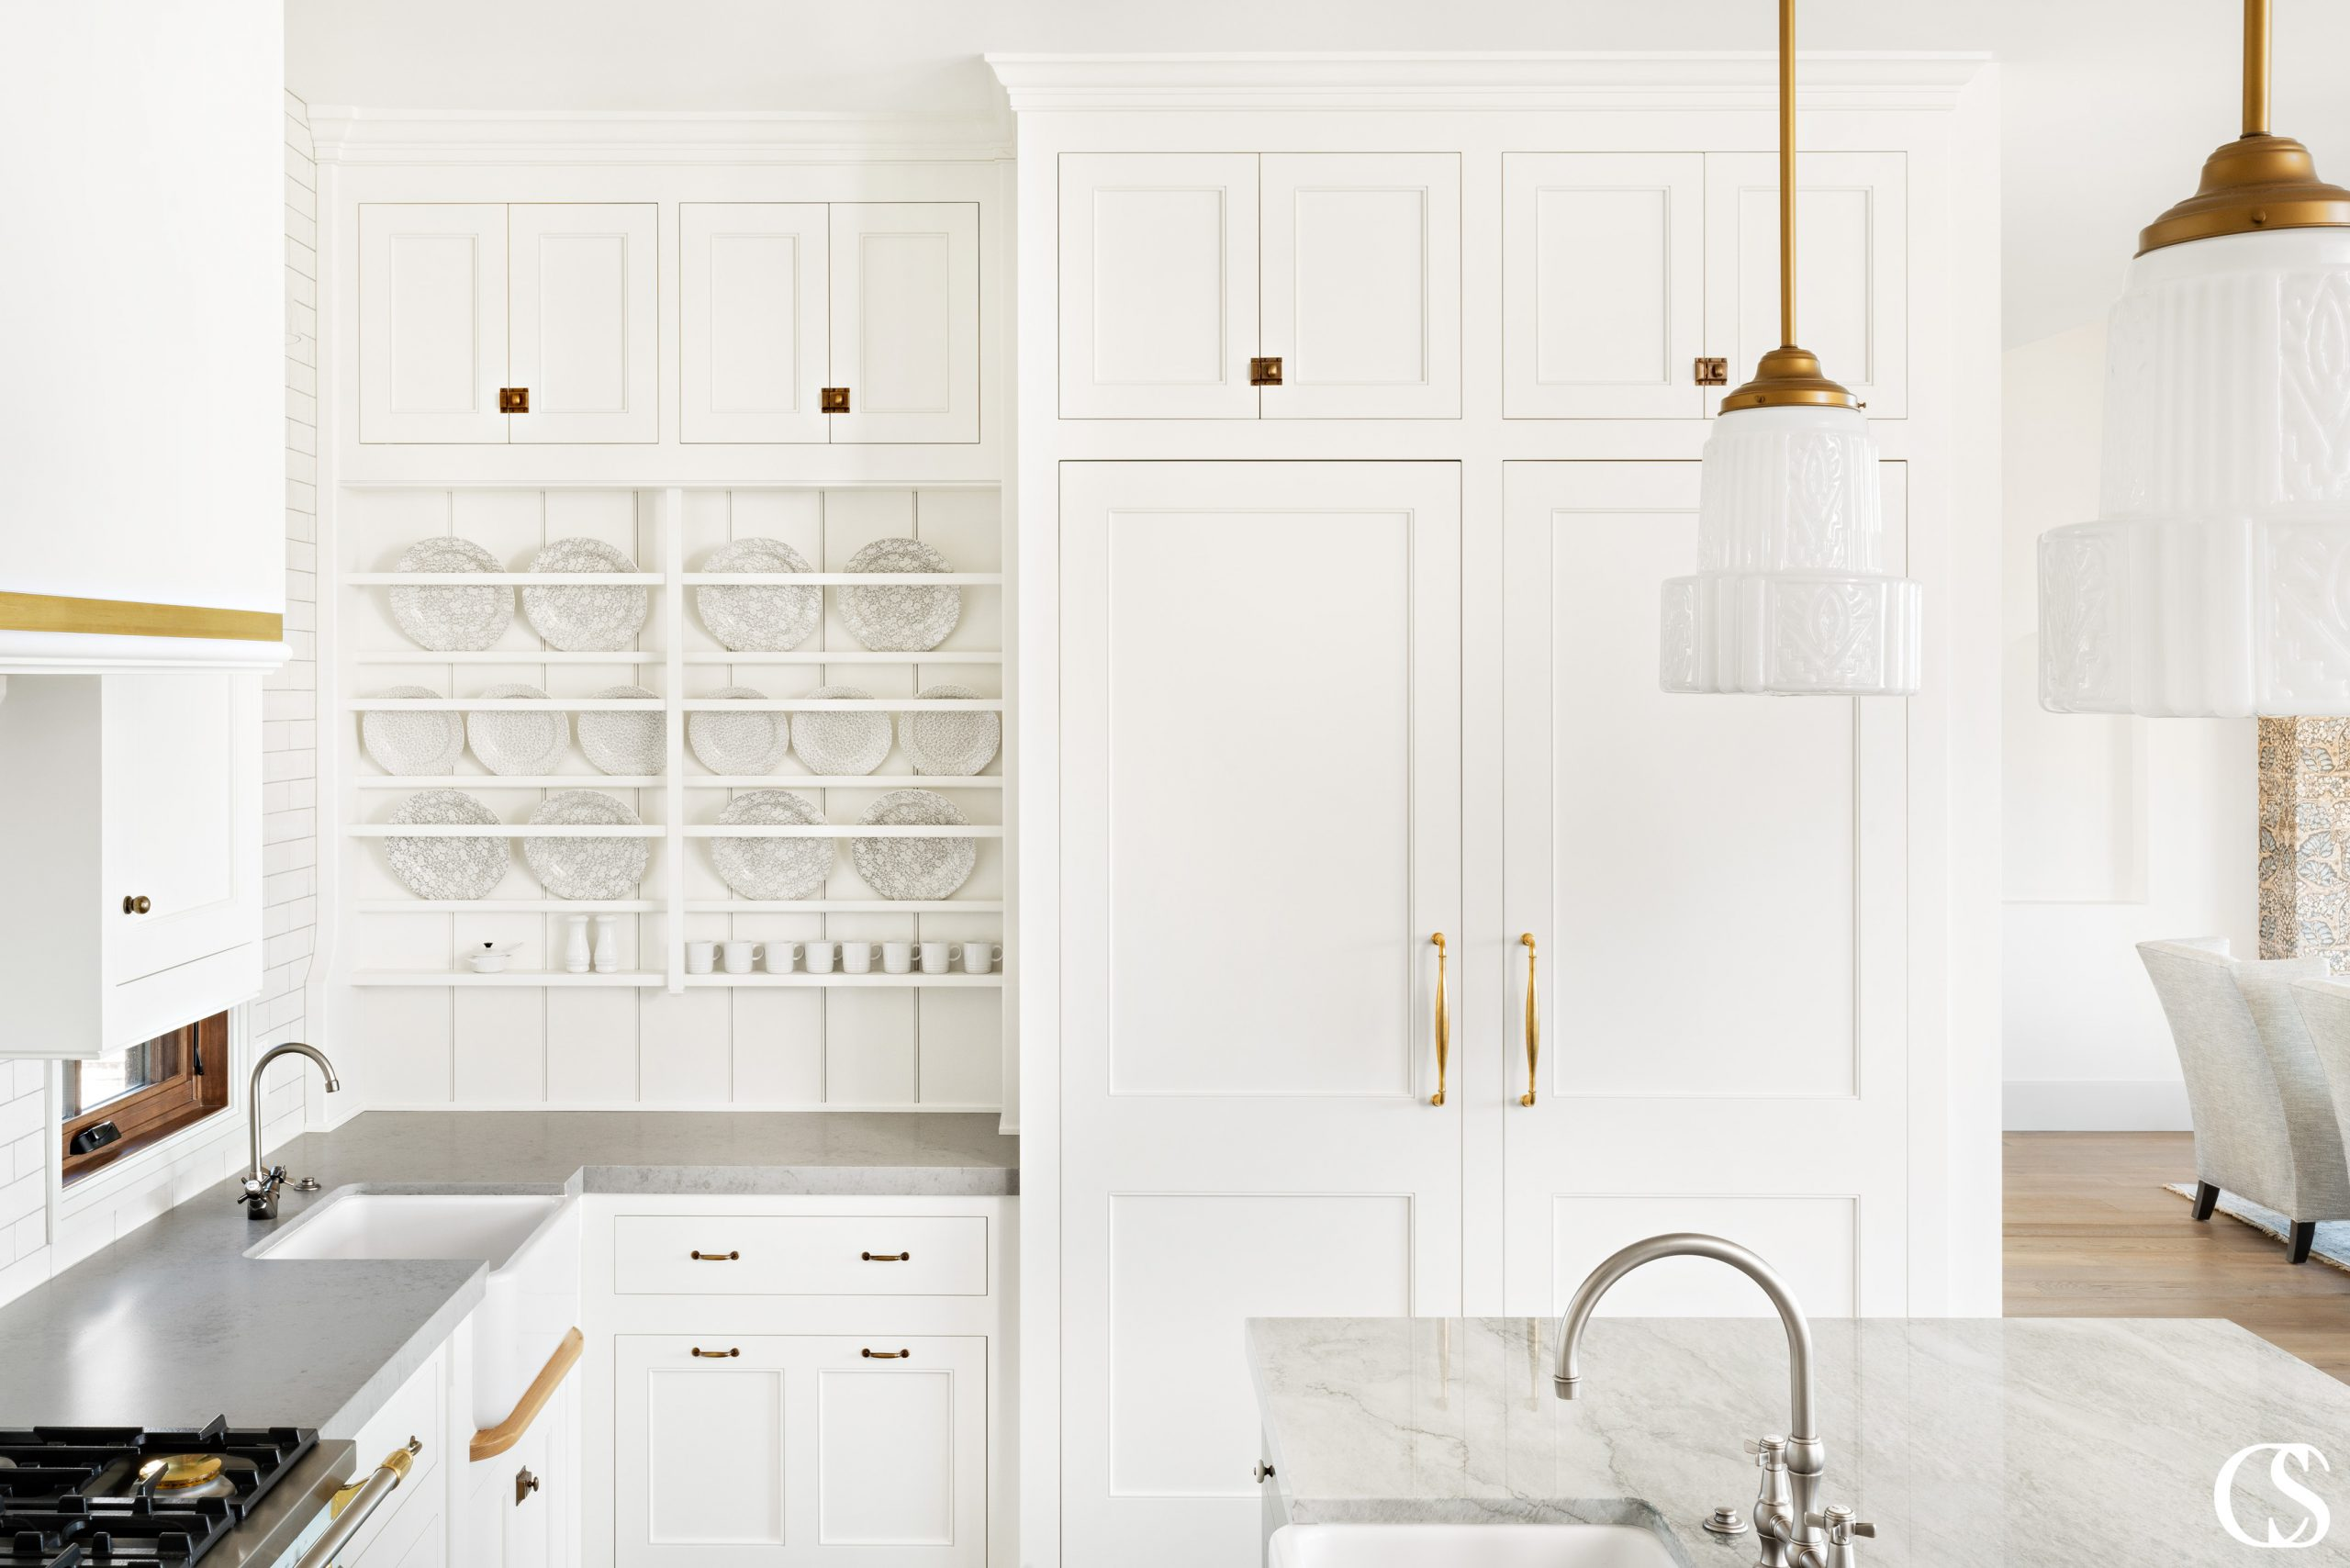 Have china you absolutely love? With custom cabinets for your kitchen, you can always have it on display and easy to use.